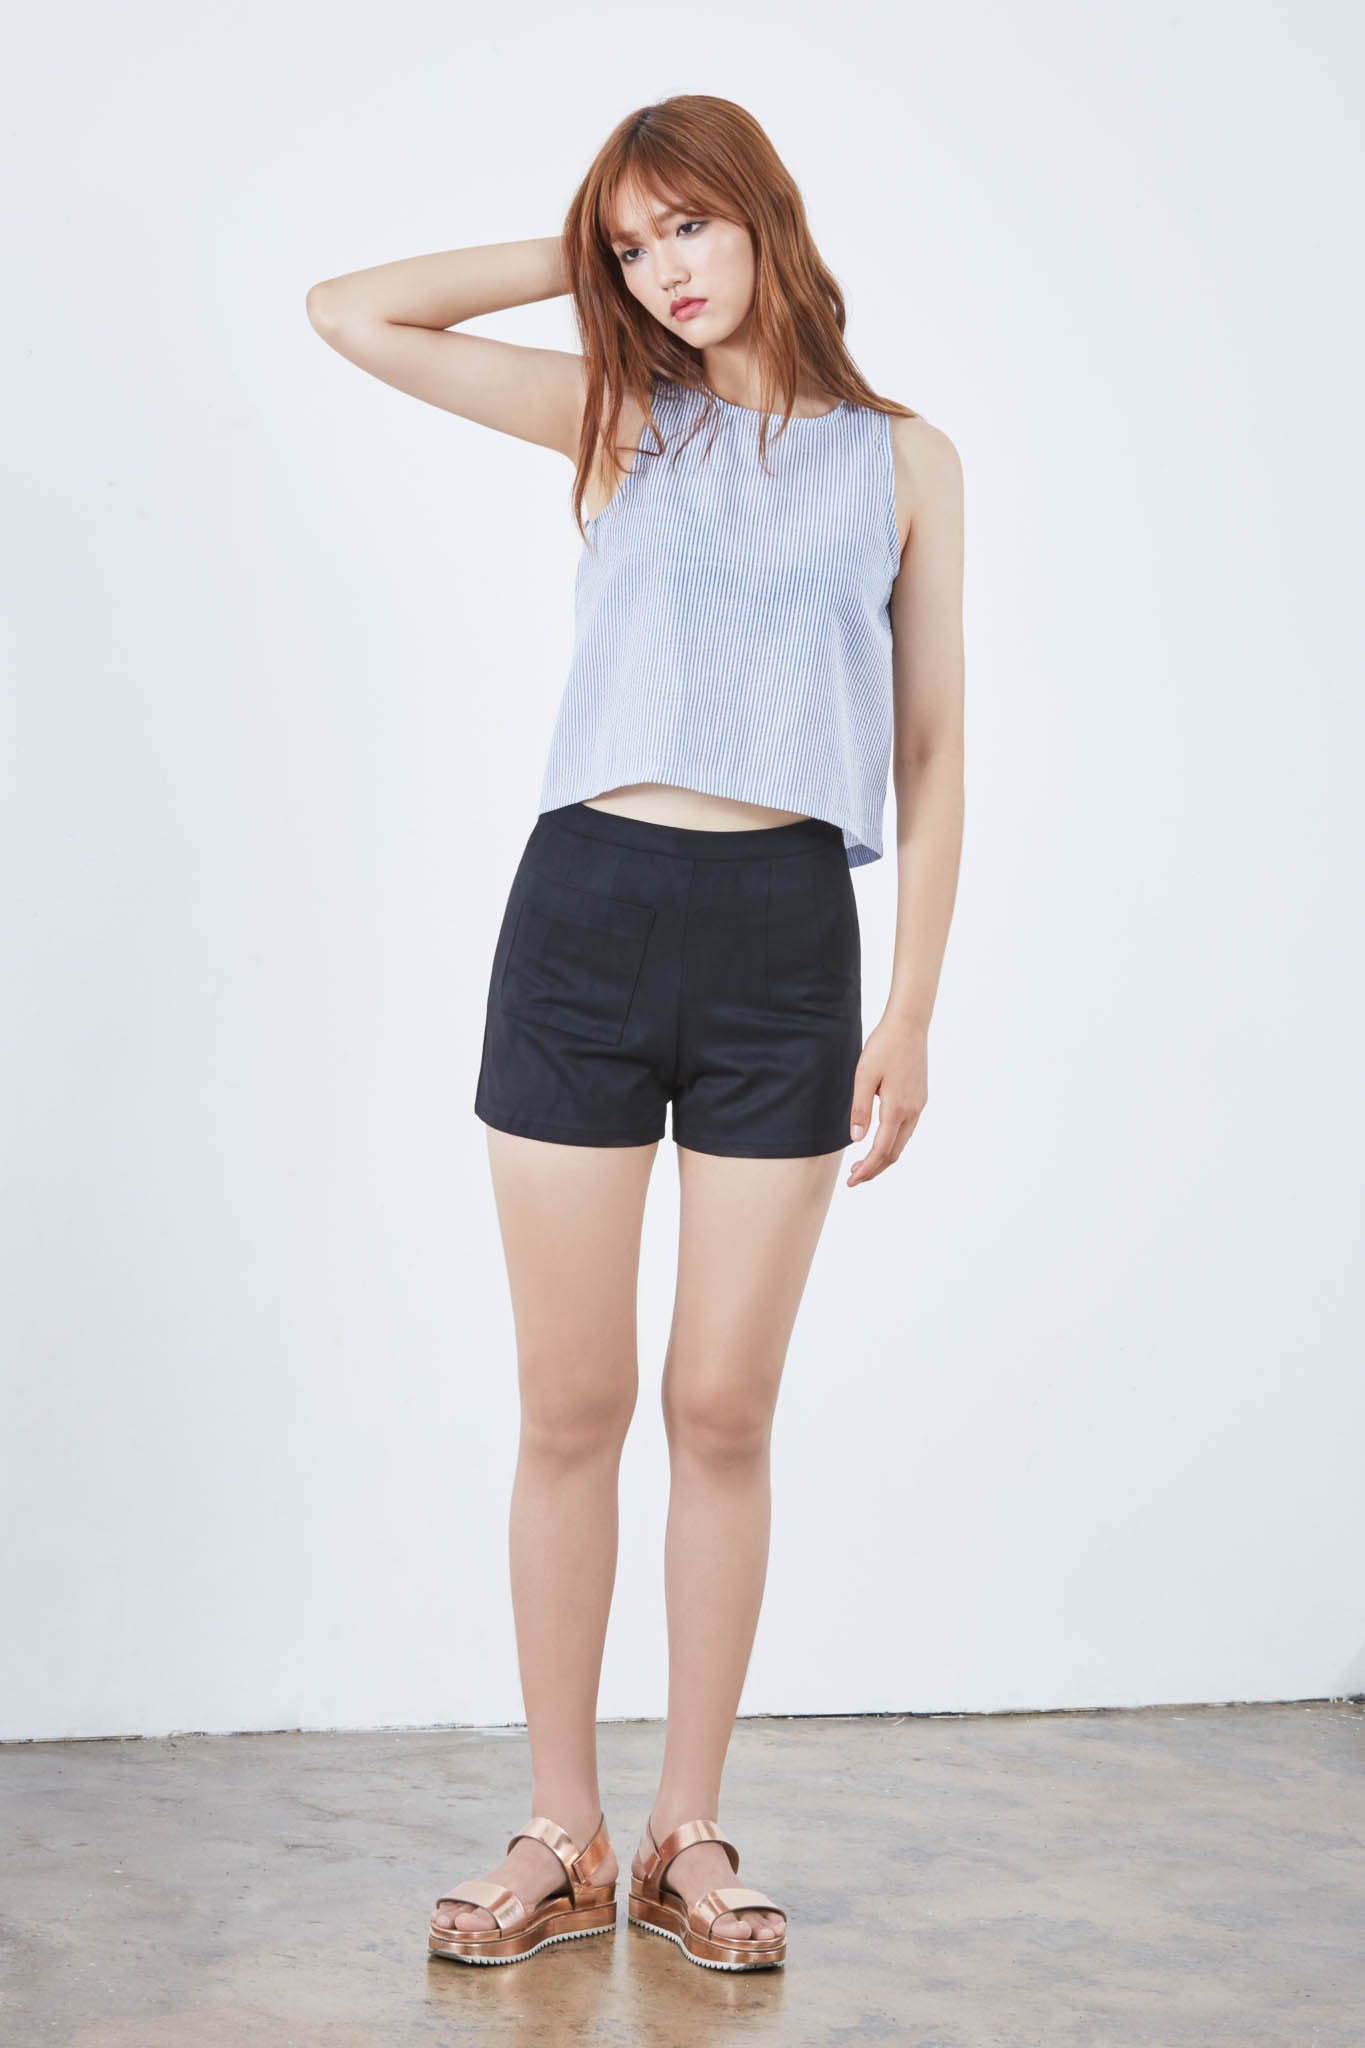 Clean-cut suedette shorts